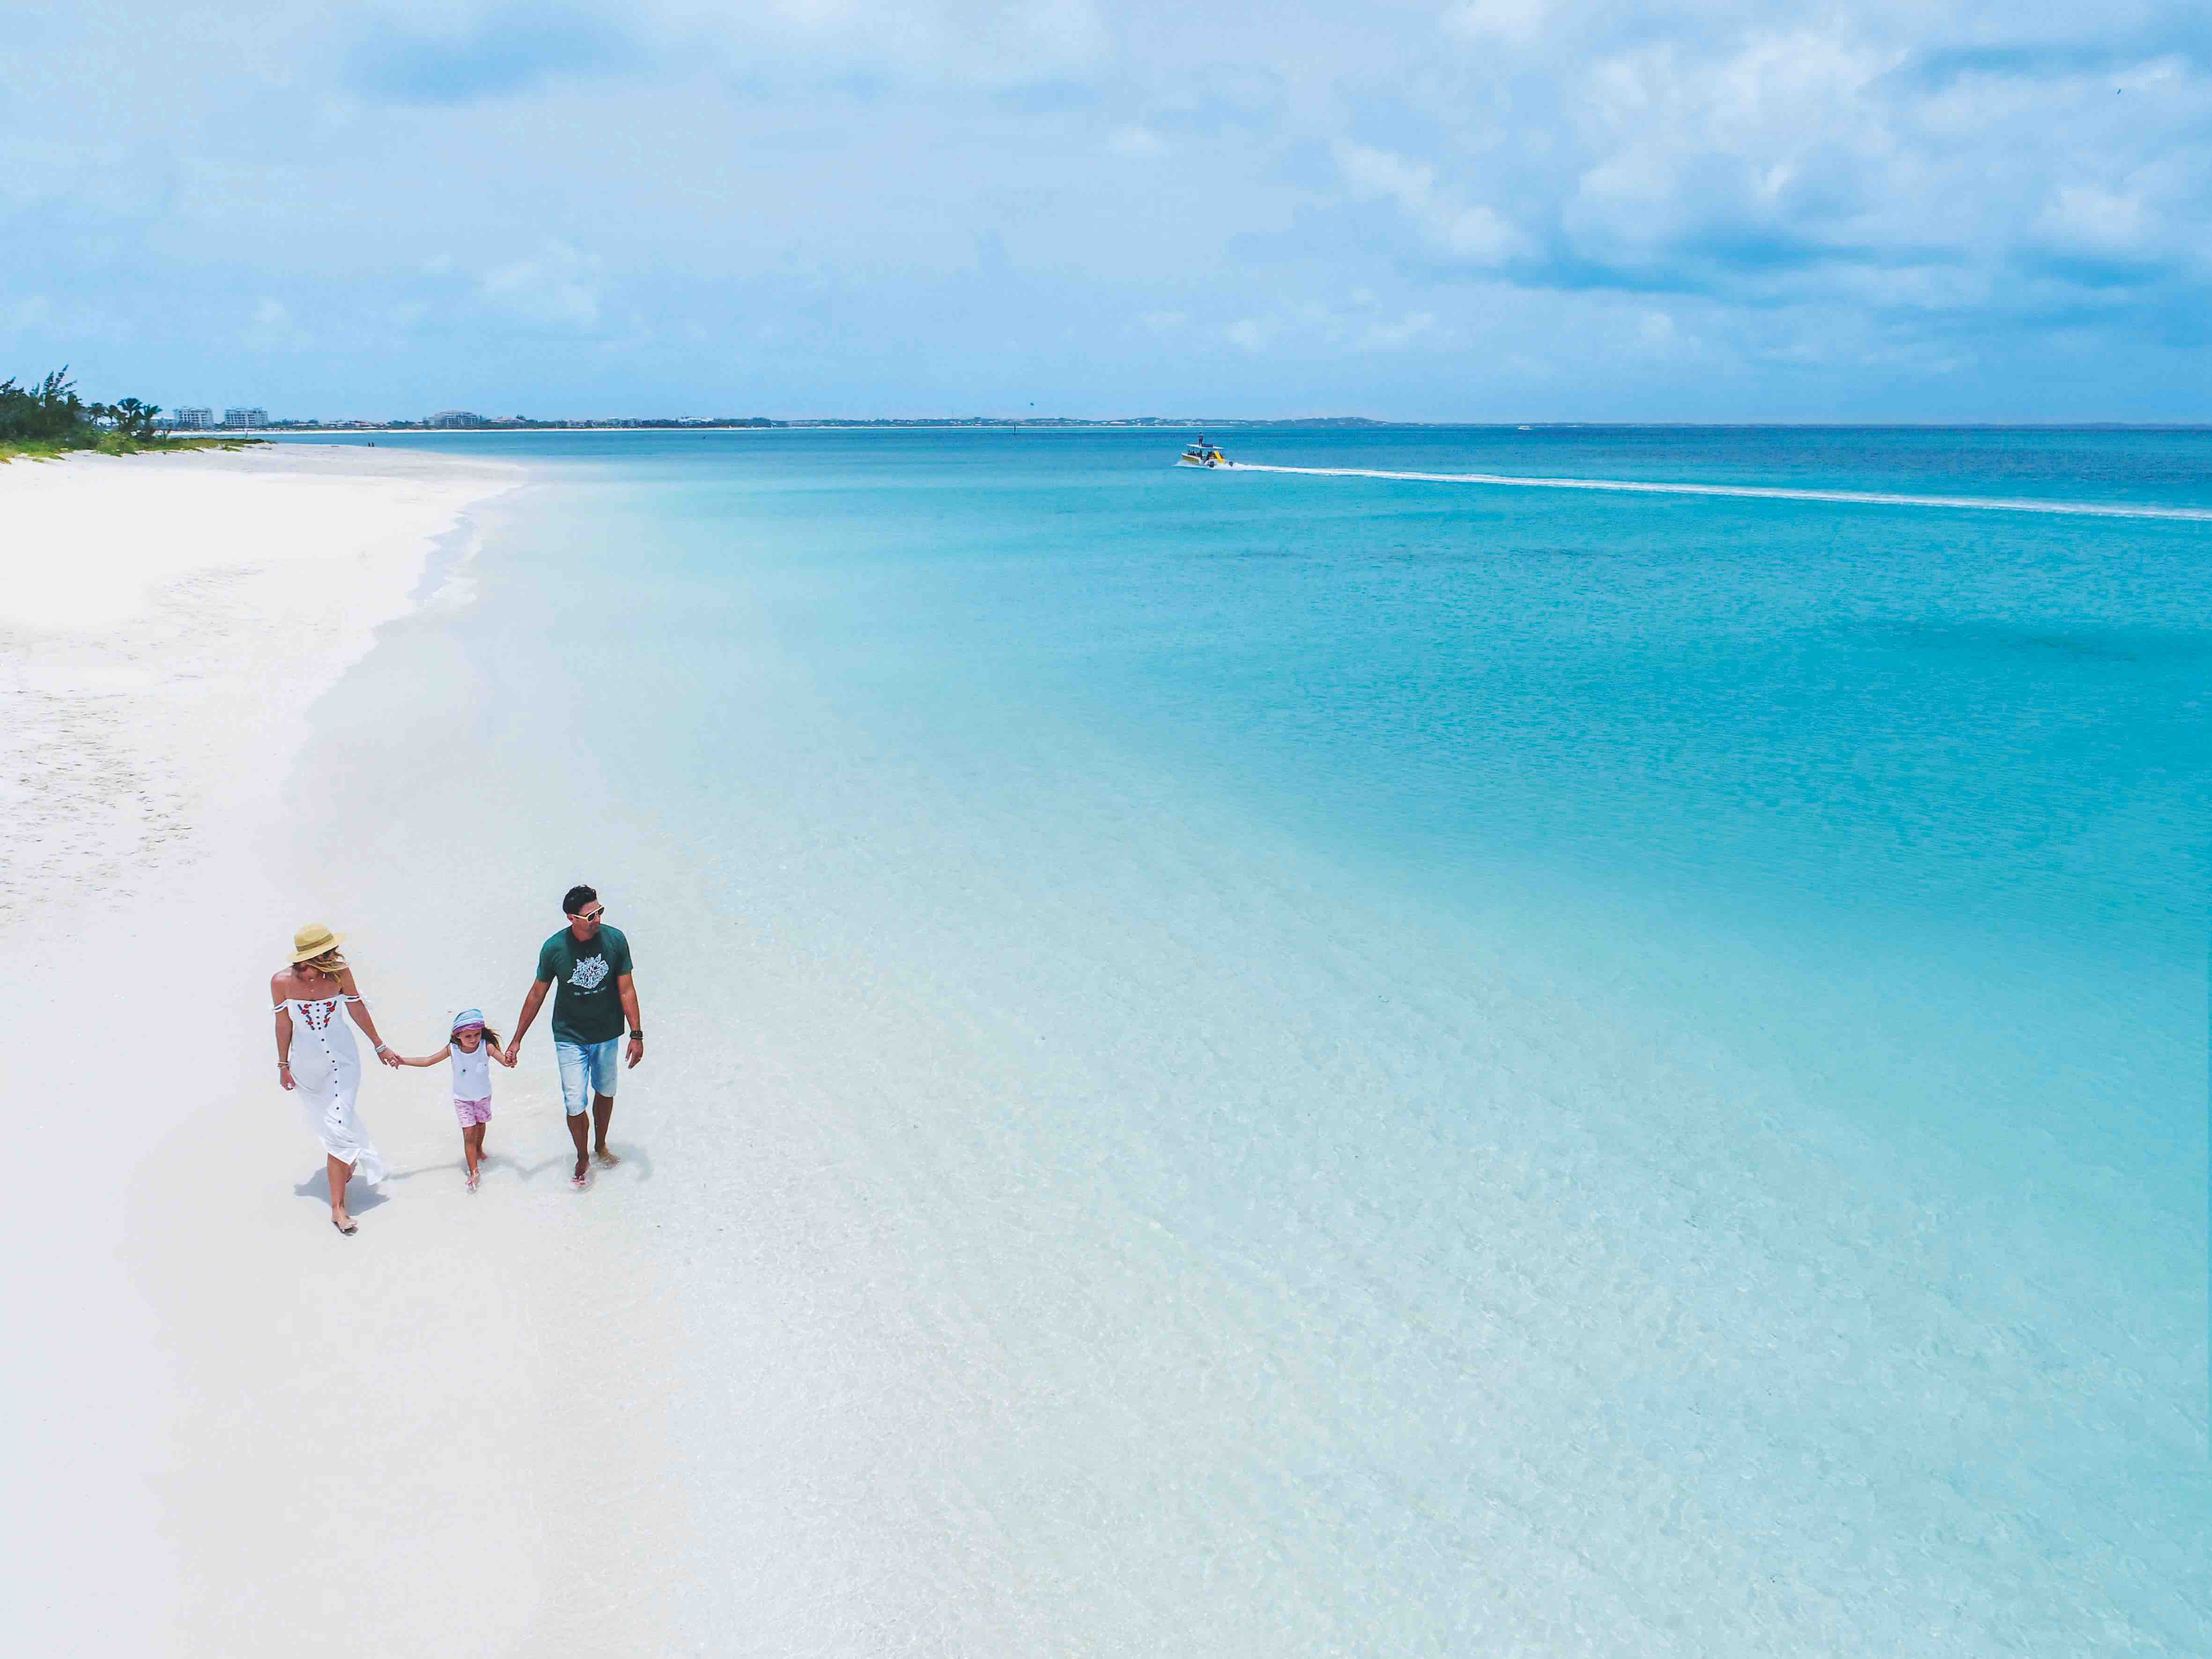 The Ultimate Mini-guide to Exploring Other Islands in the Turks & Caicos